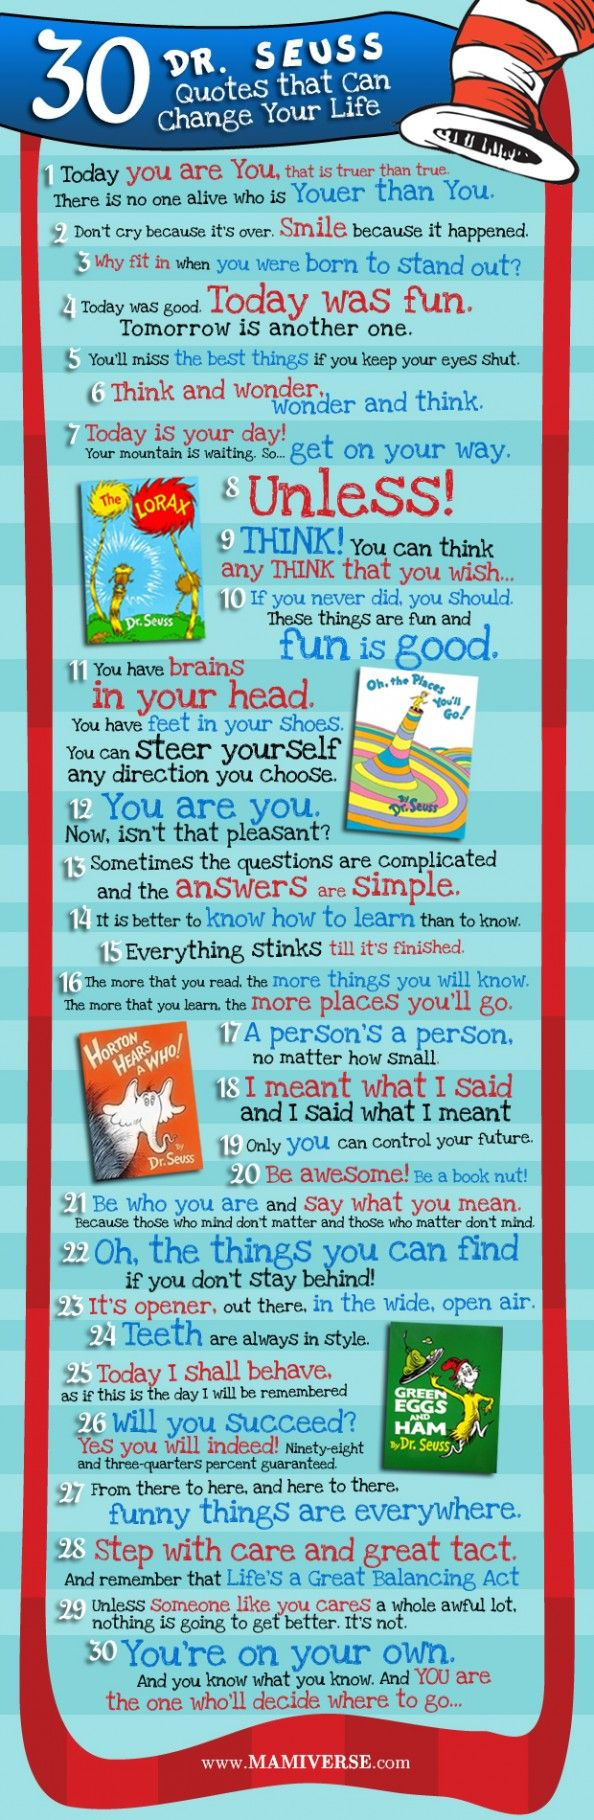 """Dr. Seuss' words of wisdom - my all time favorite book is """"Oh the places you will go"""""""